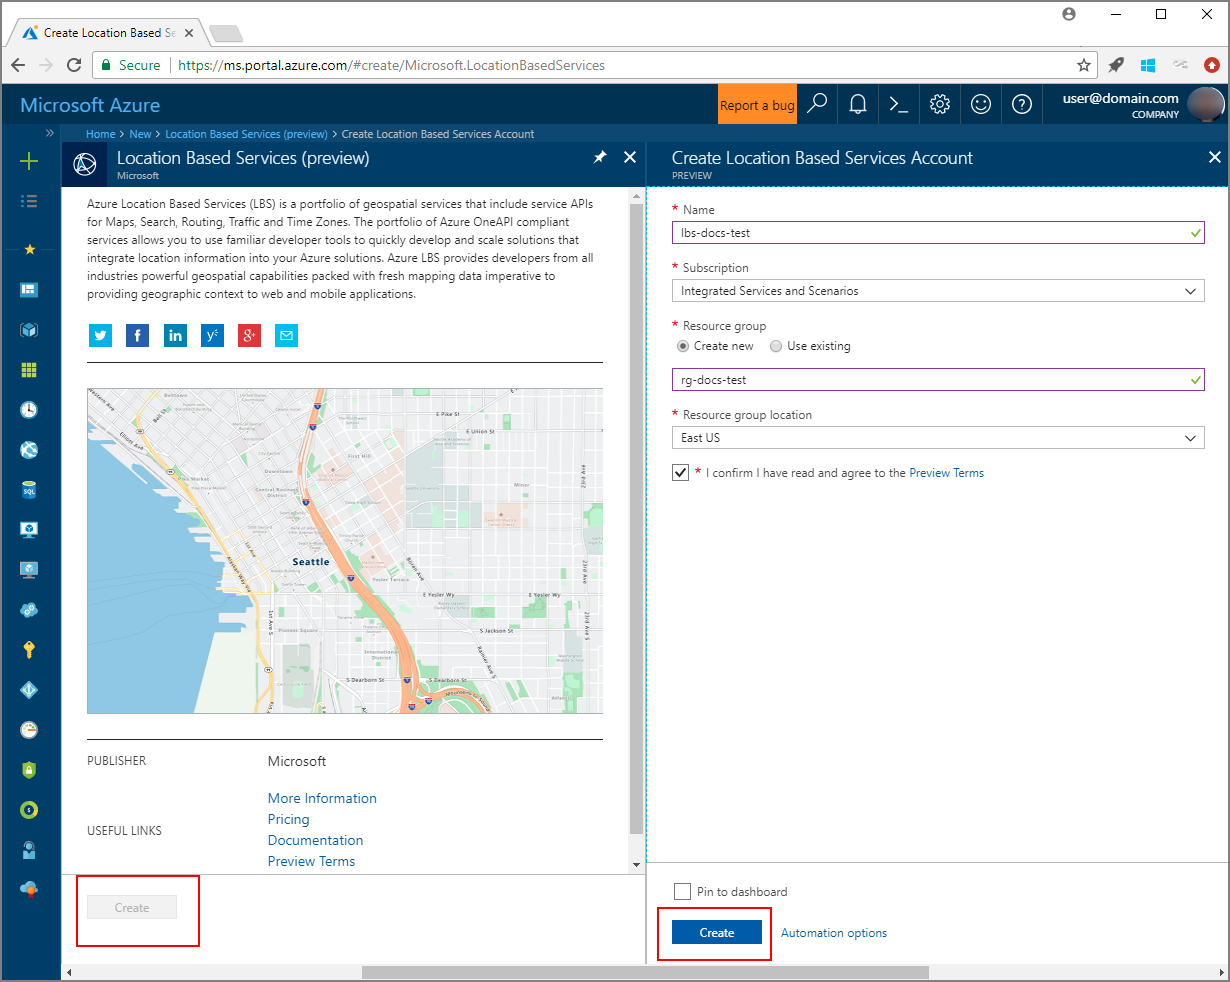 Interactive Map Search with Azure Location Based Services